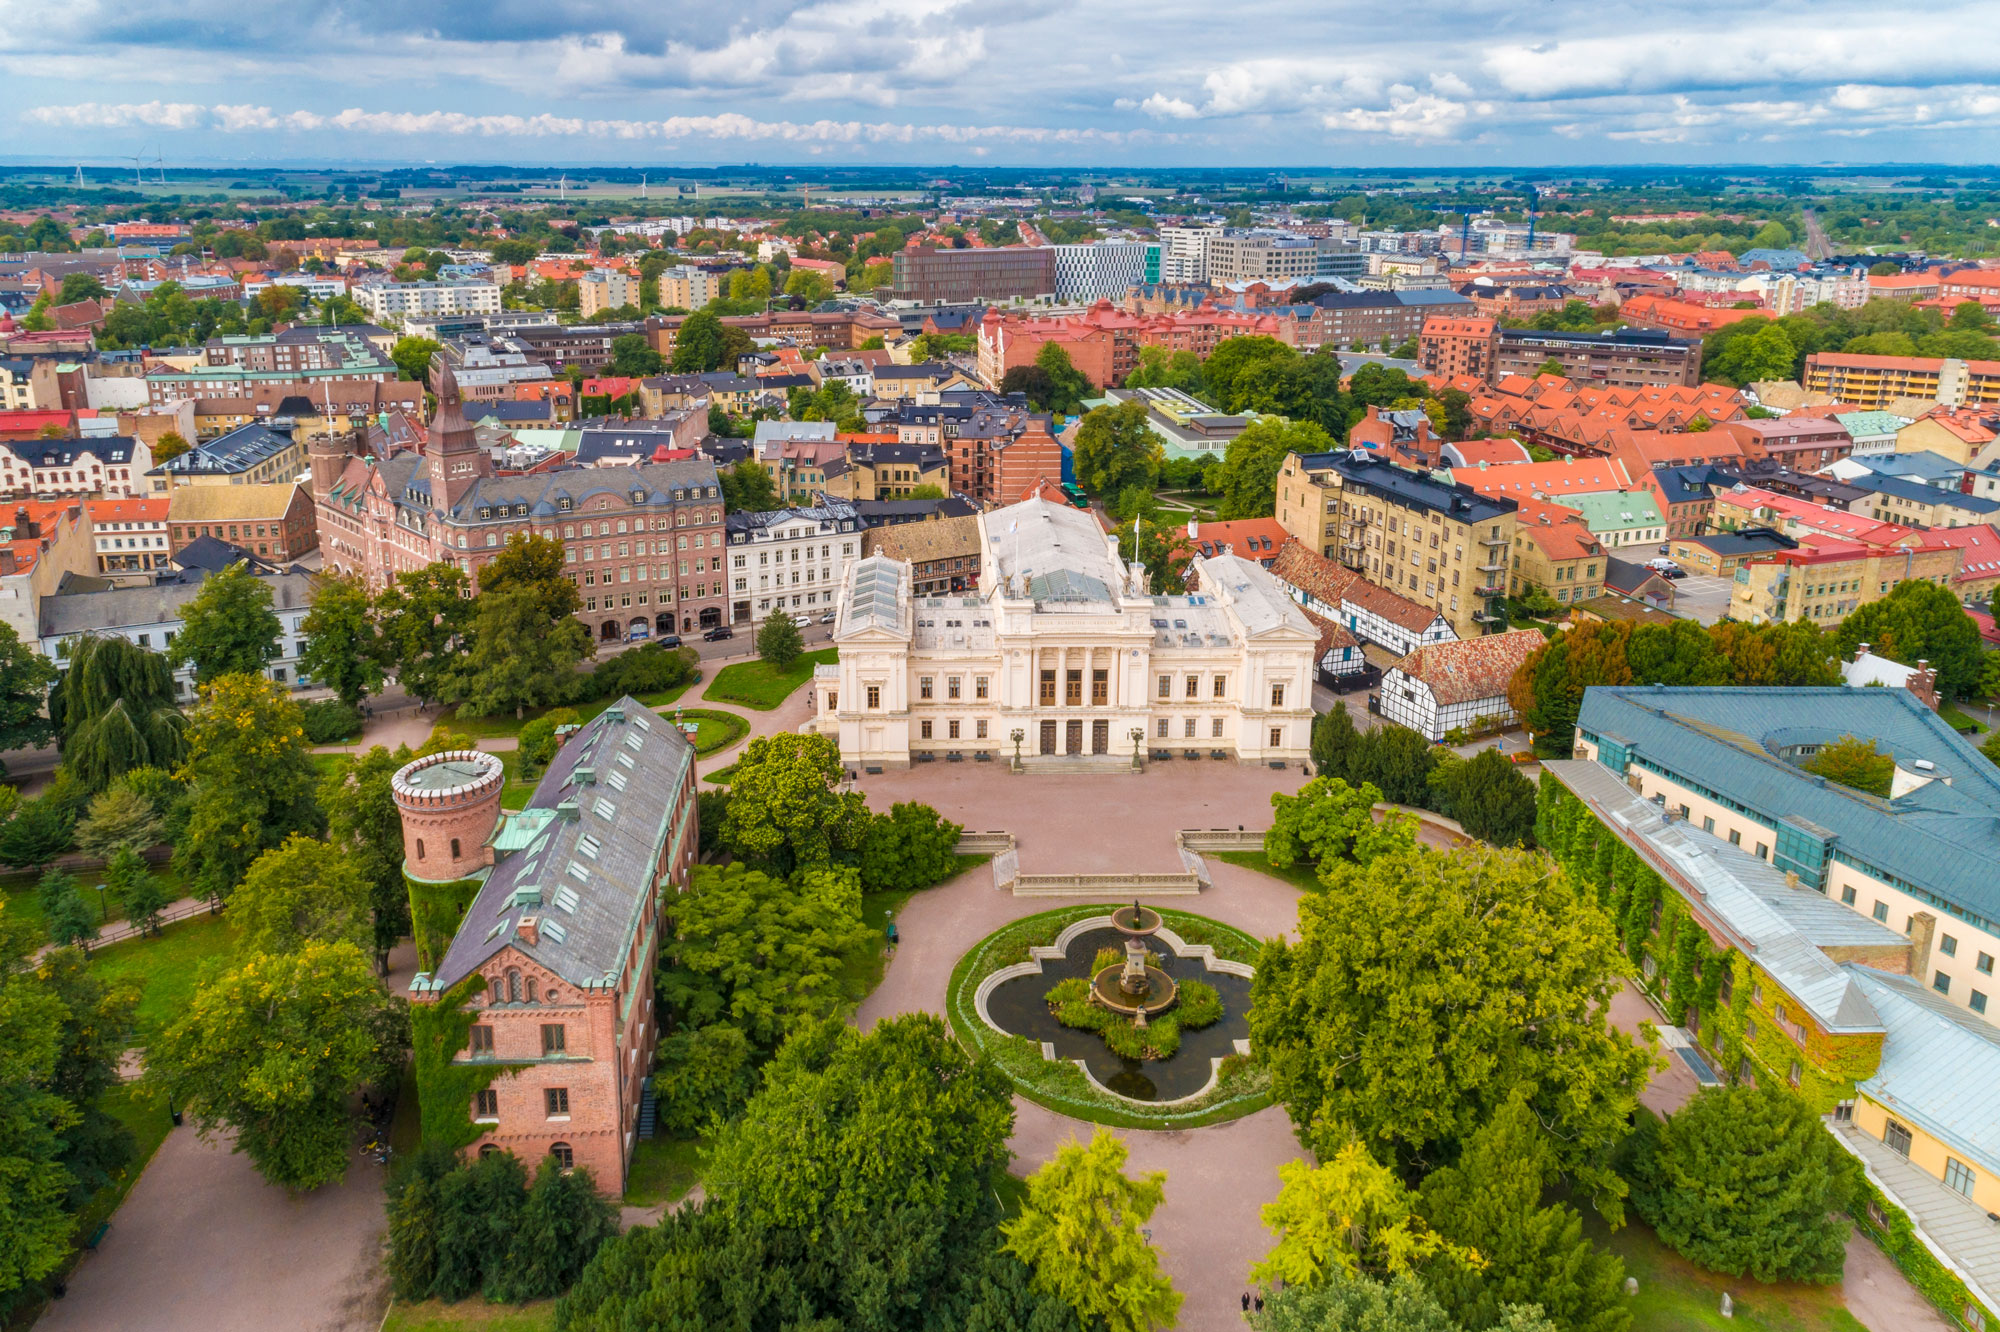 erial view of Lund University and surrounding old town buildings, Lund, Sweden.